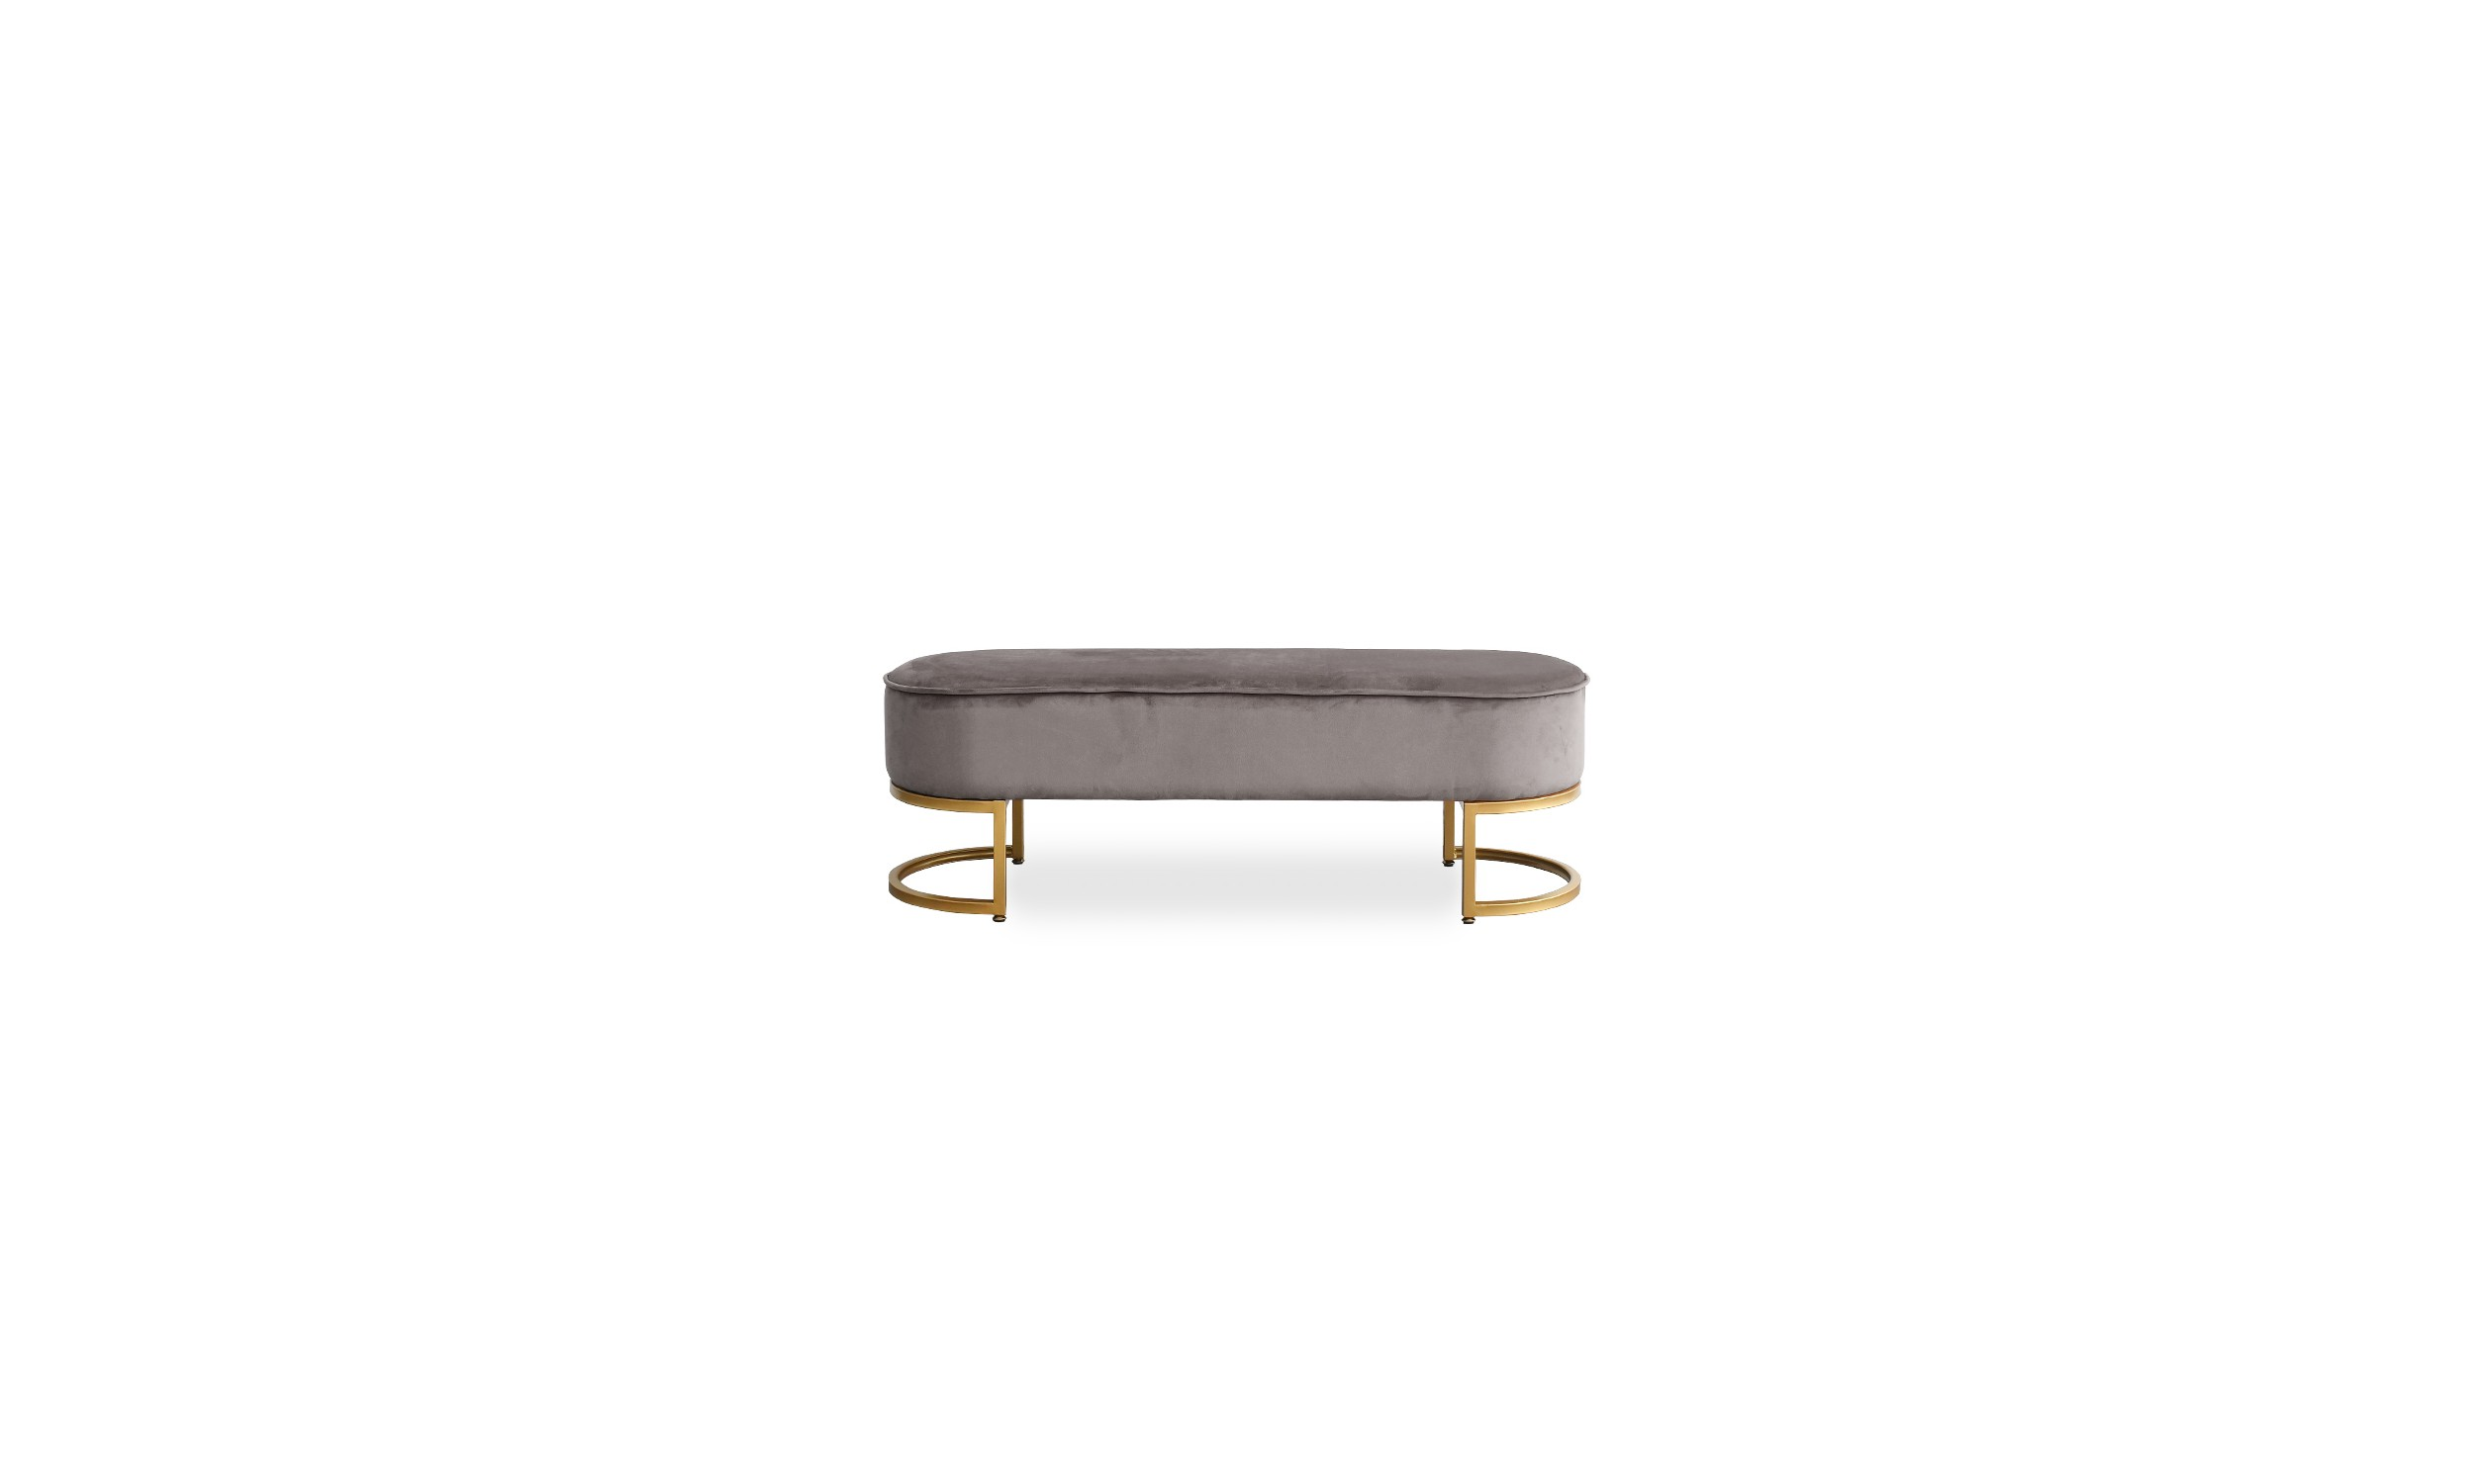 Banquette Velours Taupe Pieds Or VITA